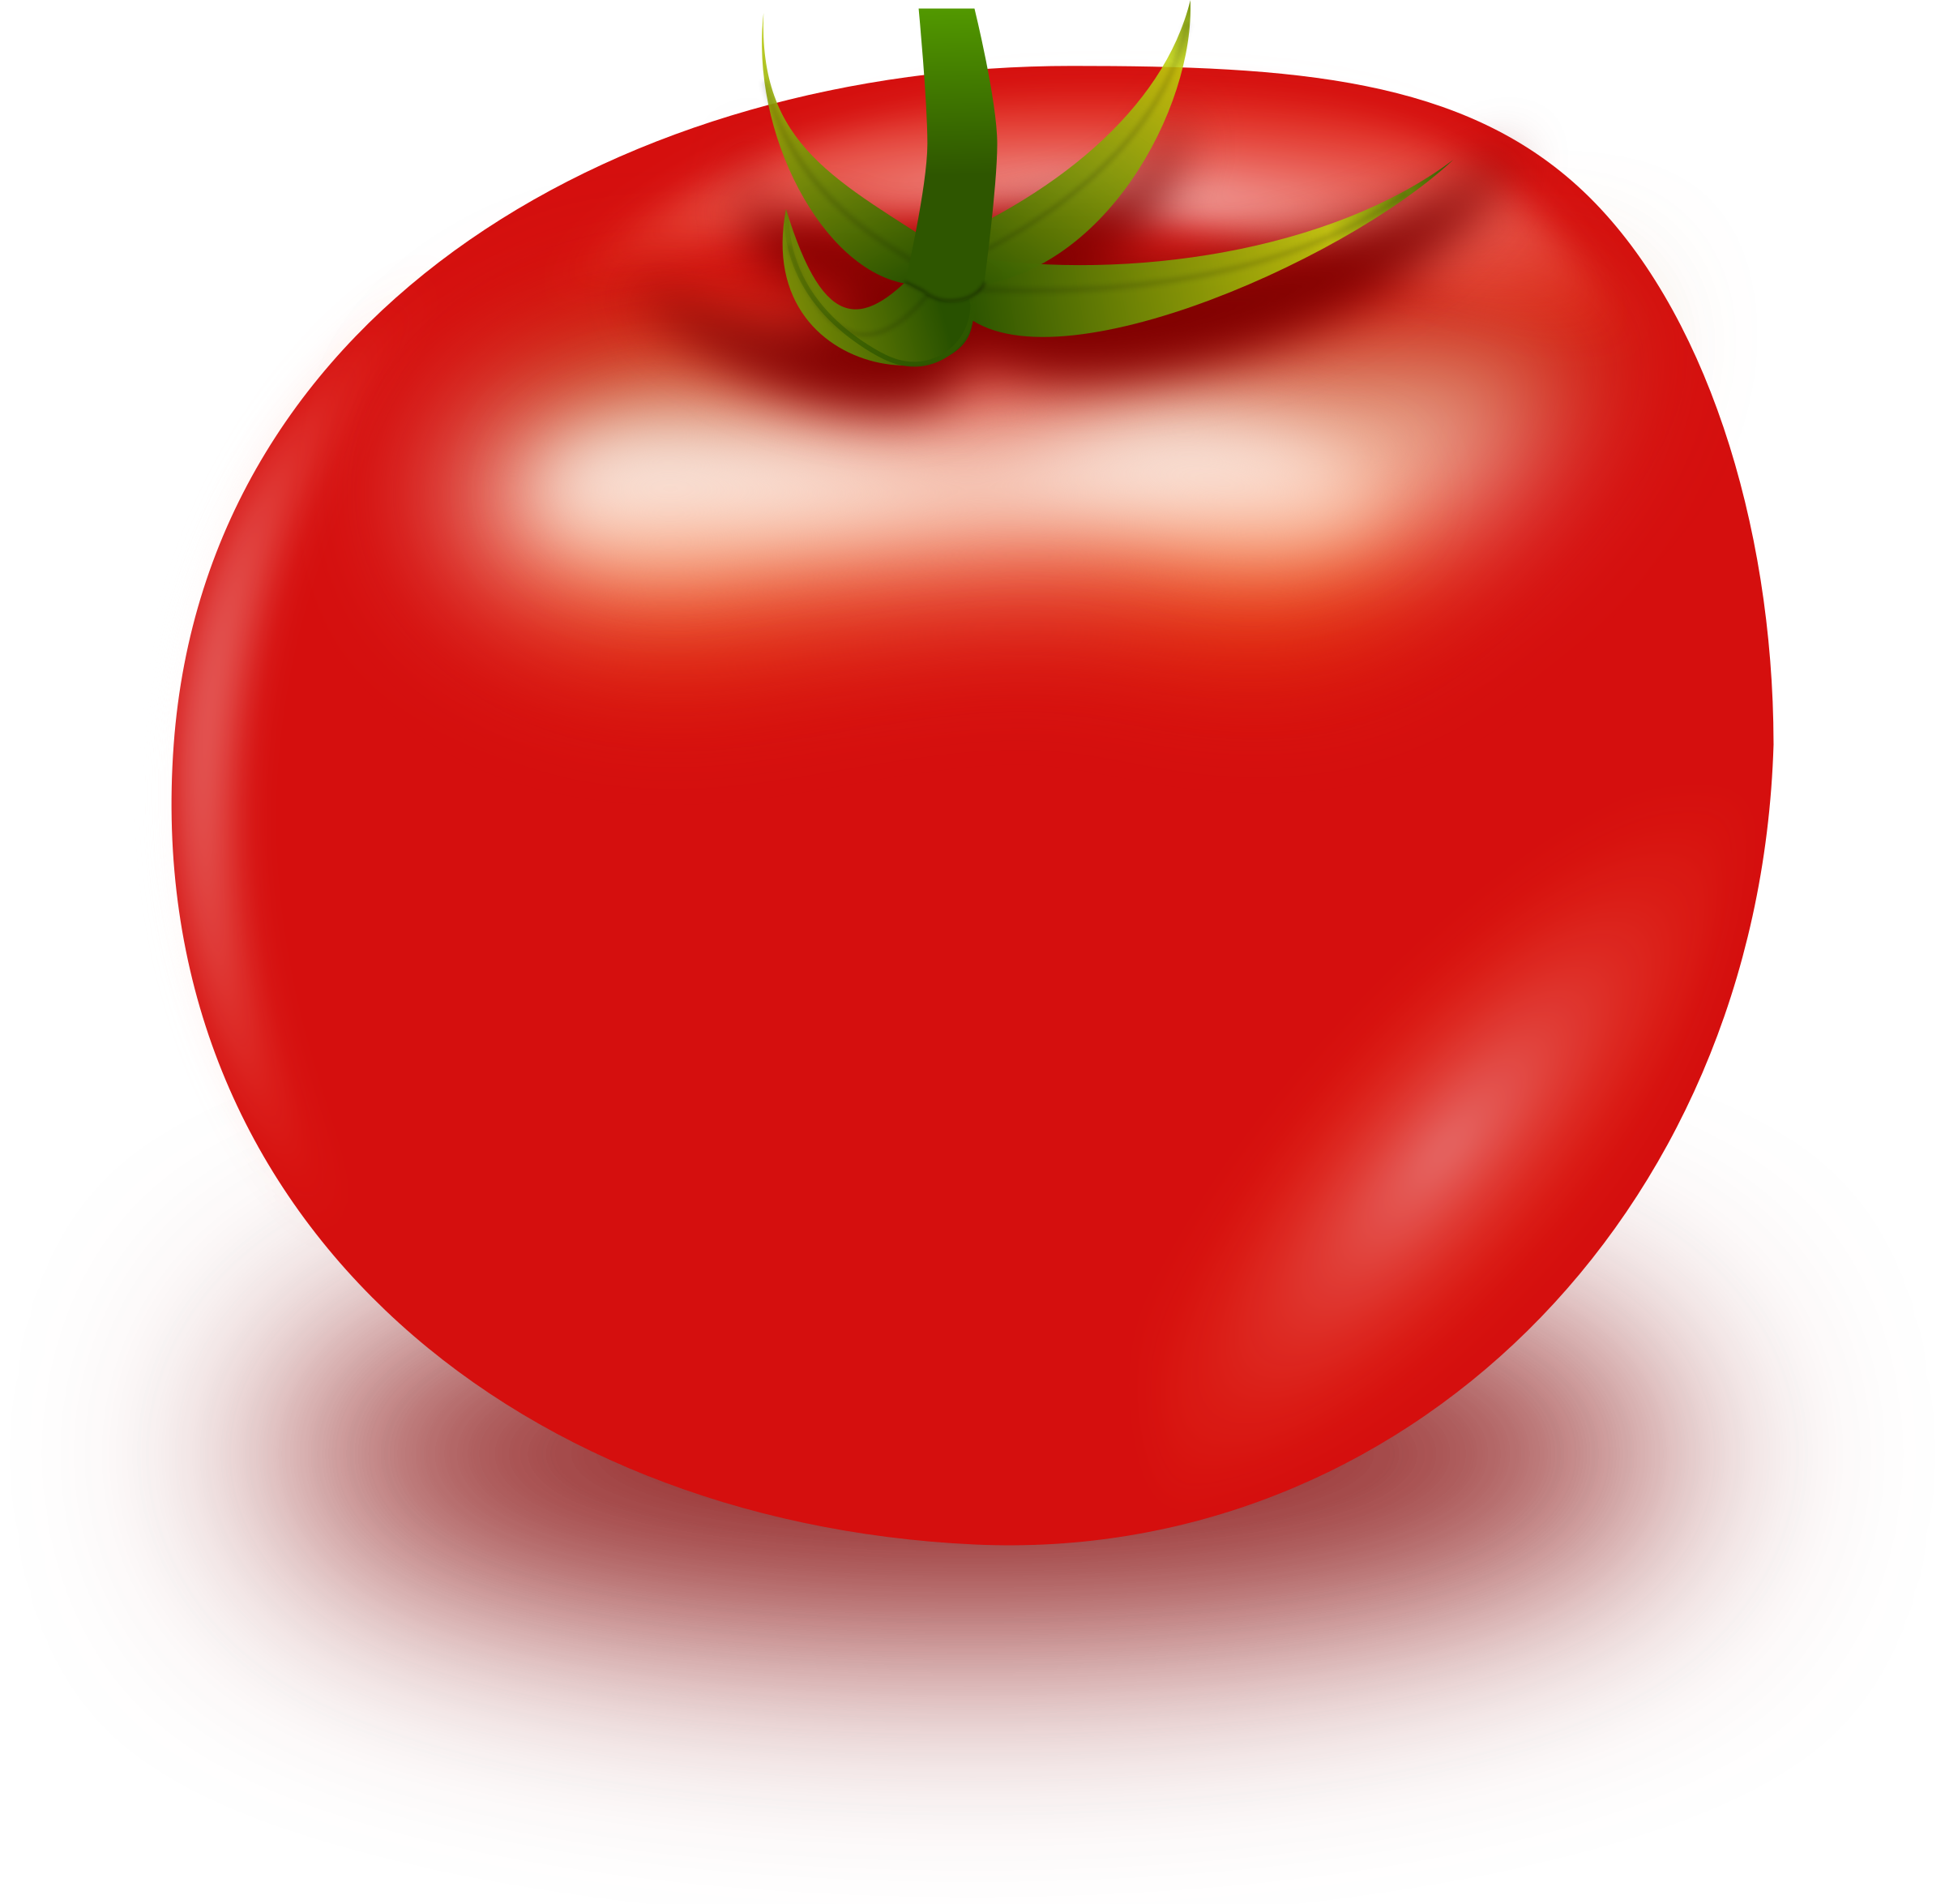 Tomato big image png. Fight clipart vector